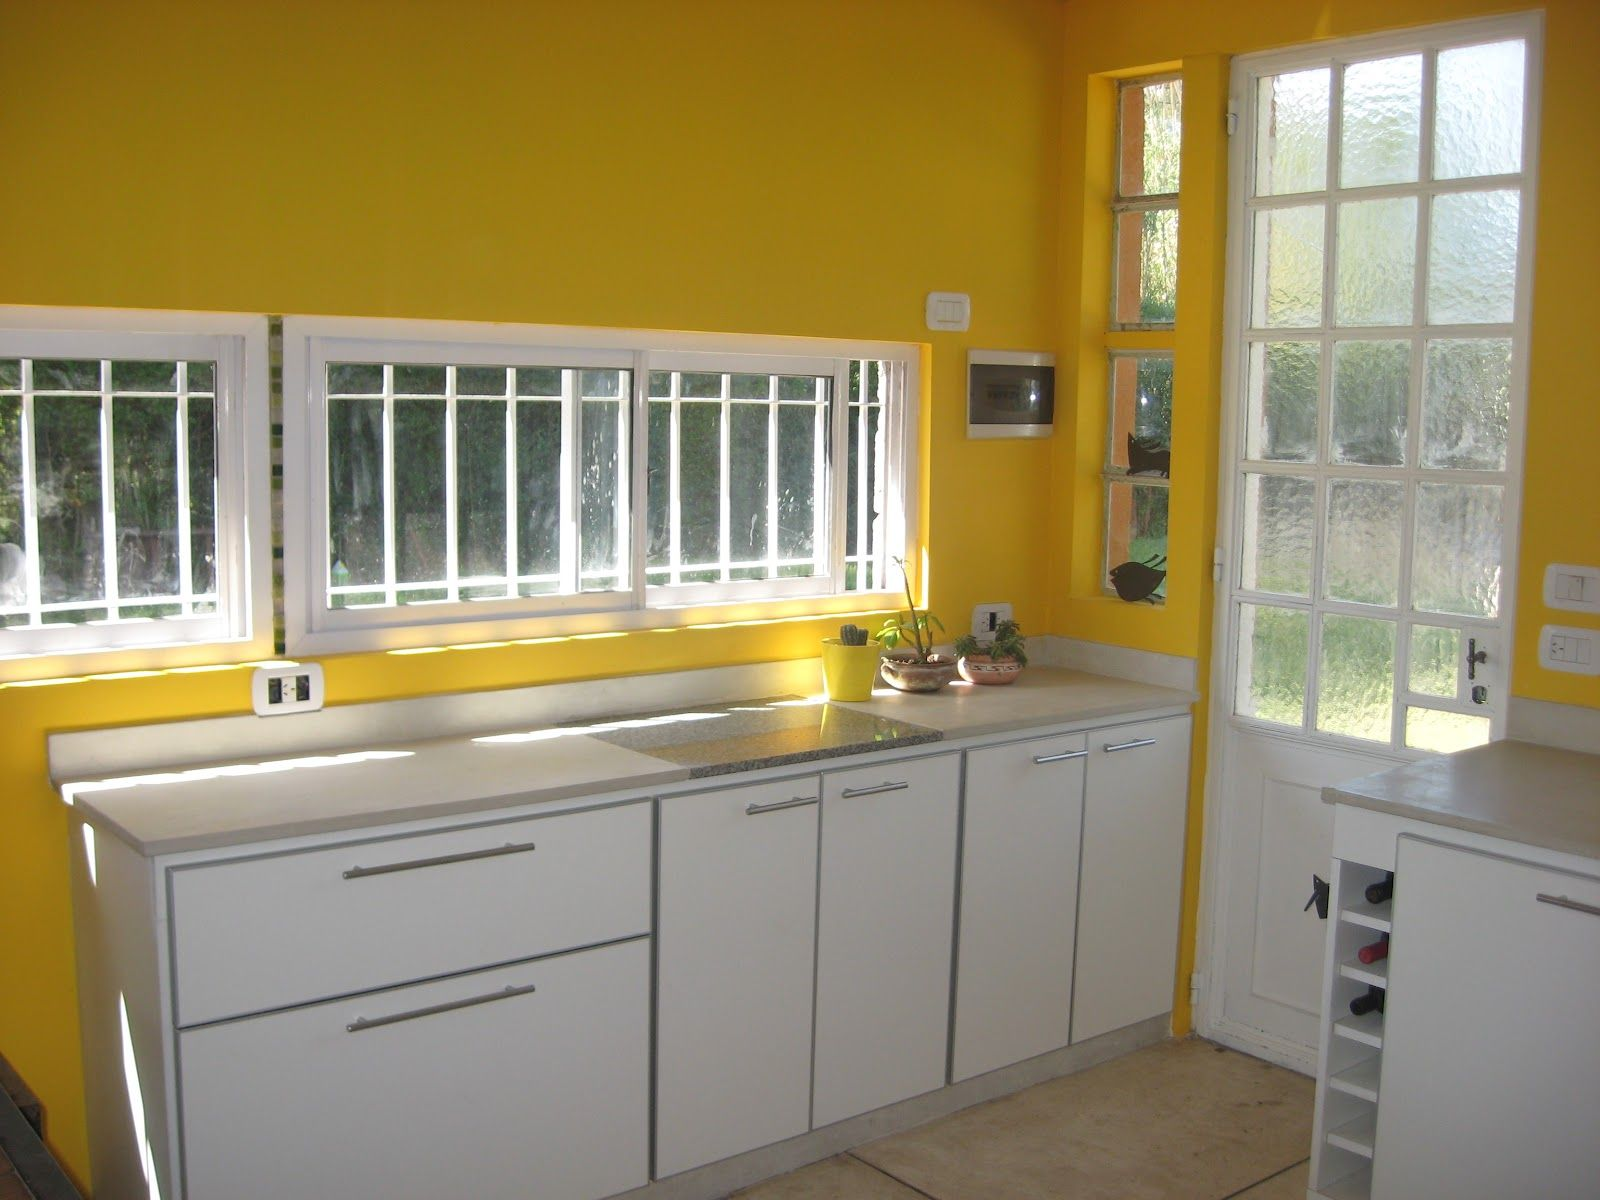 decor for yellow kitchens - Google Search | kitchens | Pinterest ...